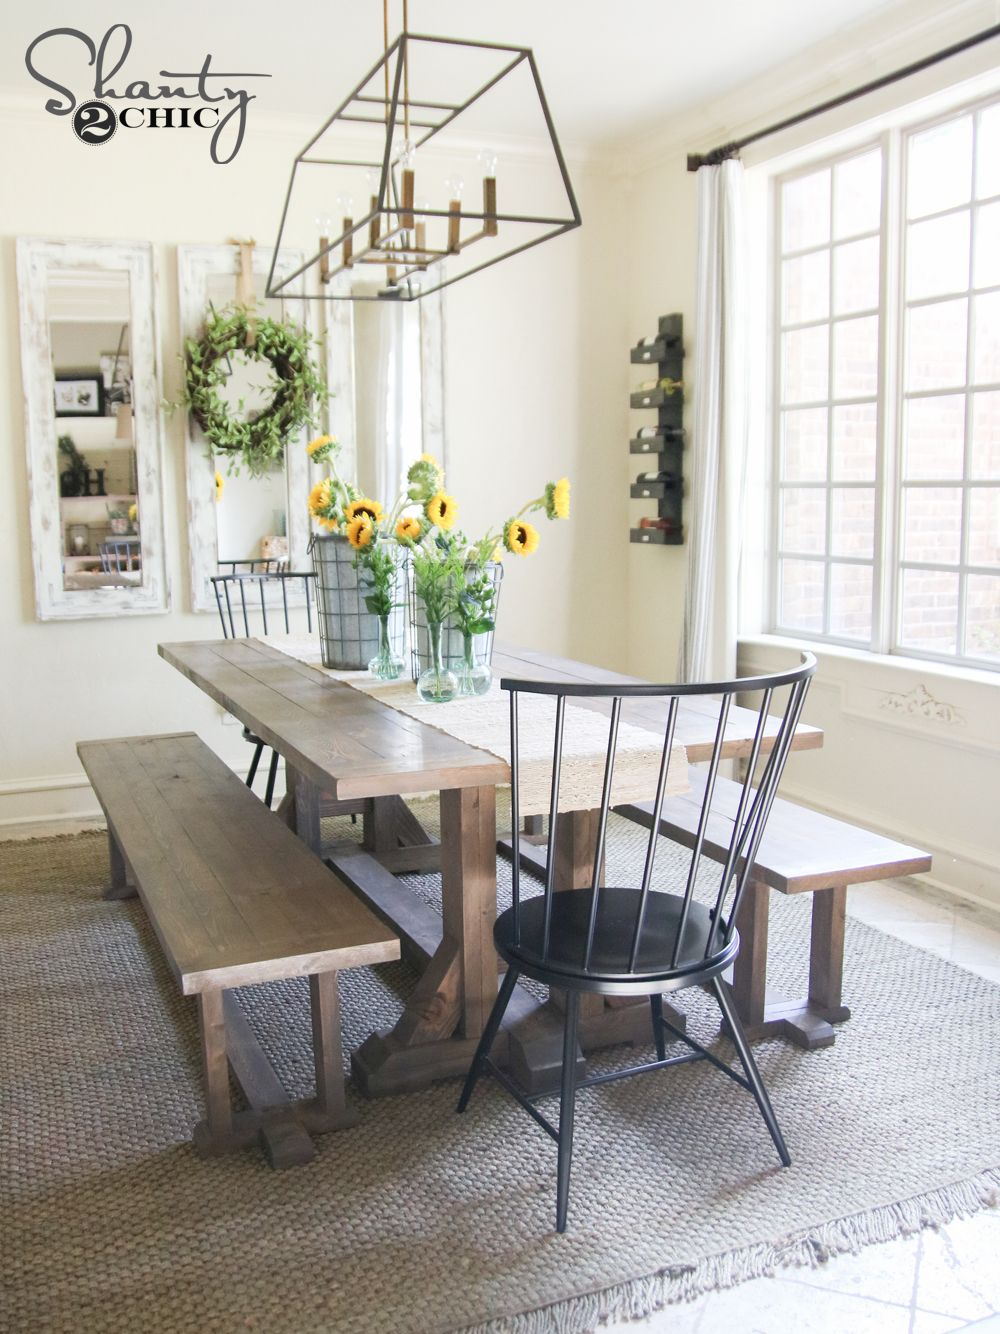 DIY Pottery Barn Inspired Dining Table for $100 | Comedores, Cabaña ...